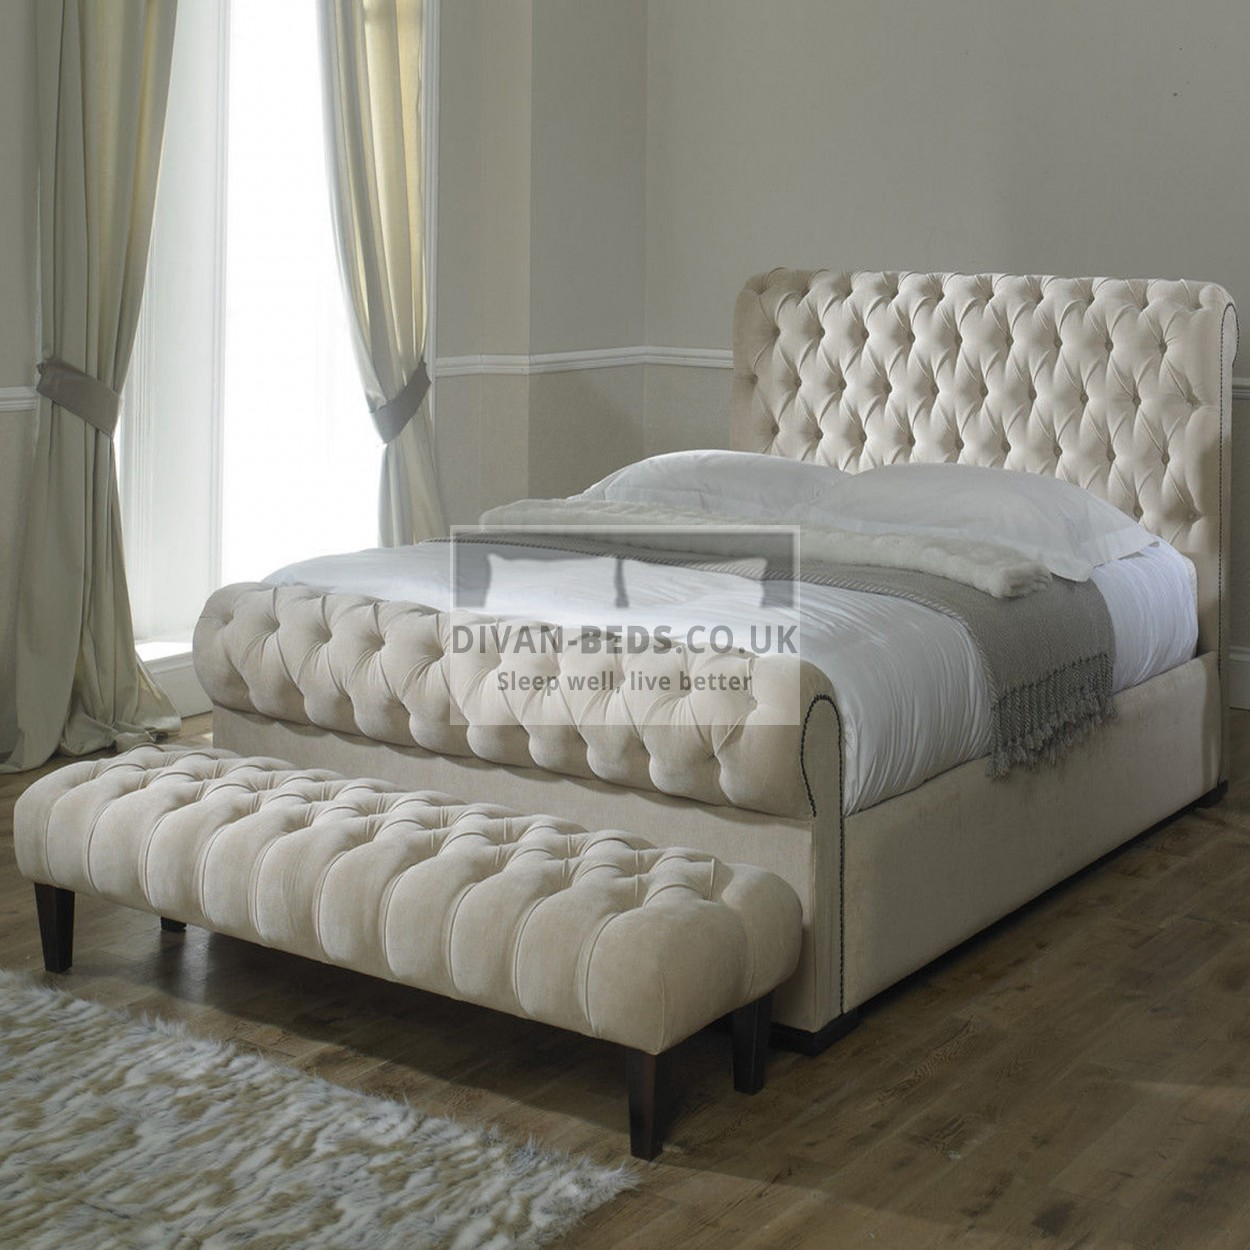 Rosaline luxury fabric upholstered bed frame guaranteed for Upholstered bed frame